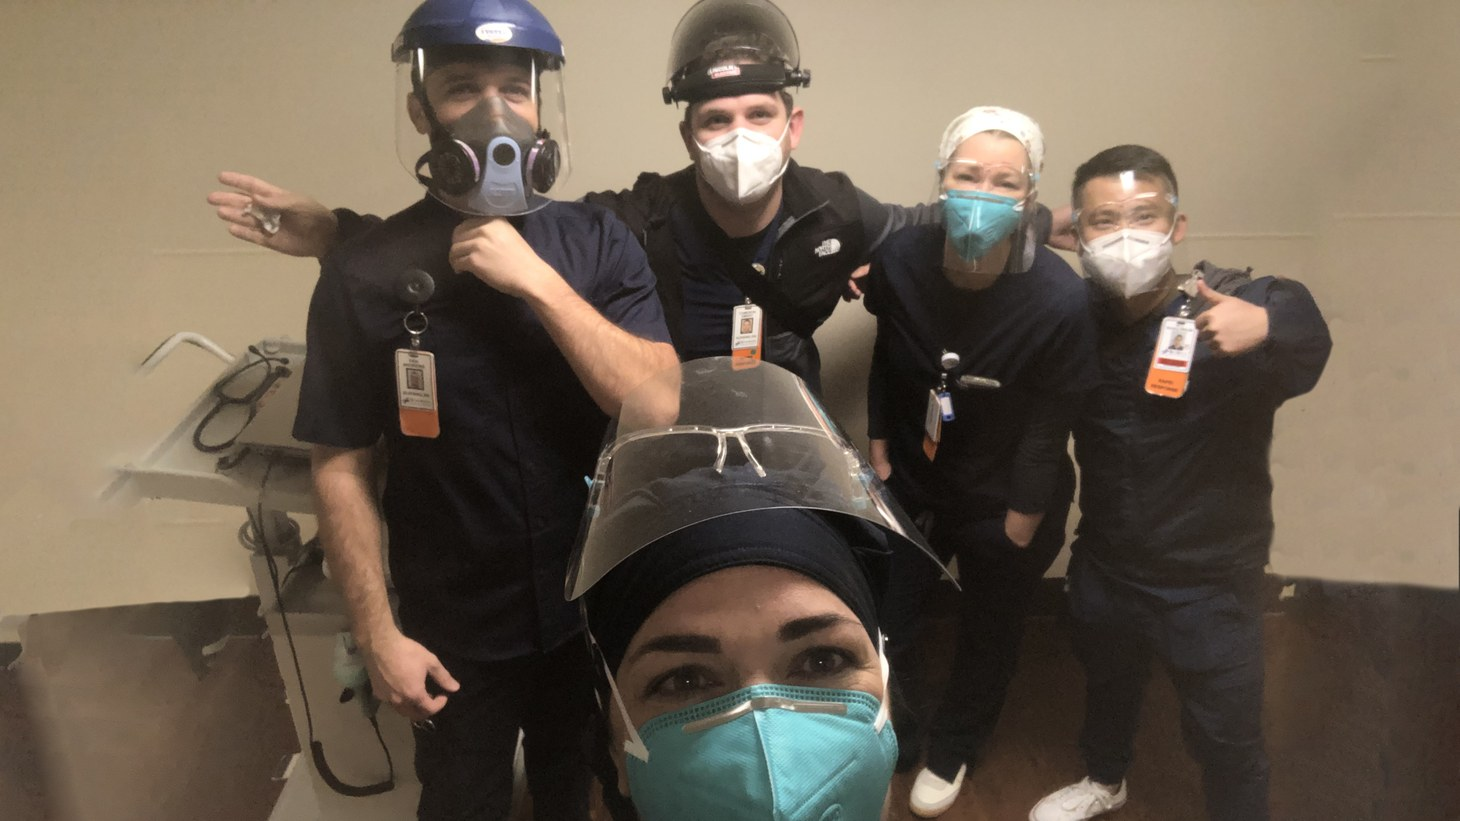 Erin McIntosh (front) poses with her colleagues at Riverside Community Hospital. Among the gear nurses regularly have to wear while treating COVID patients are face shields, N-95 masks, and respirators.